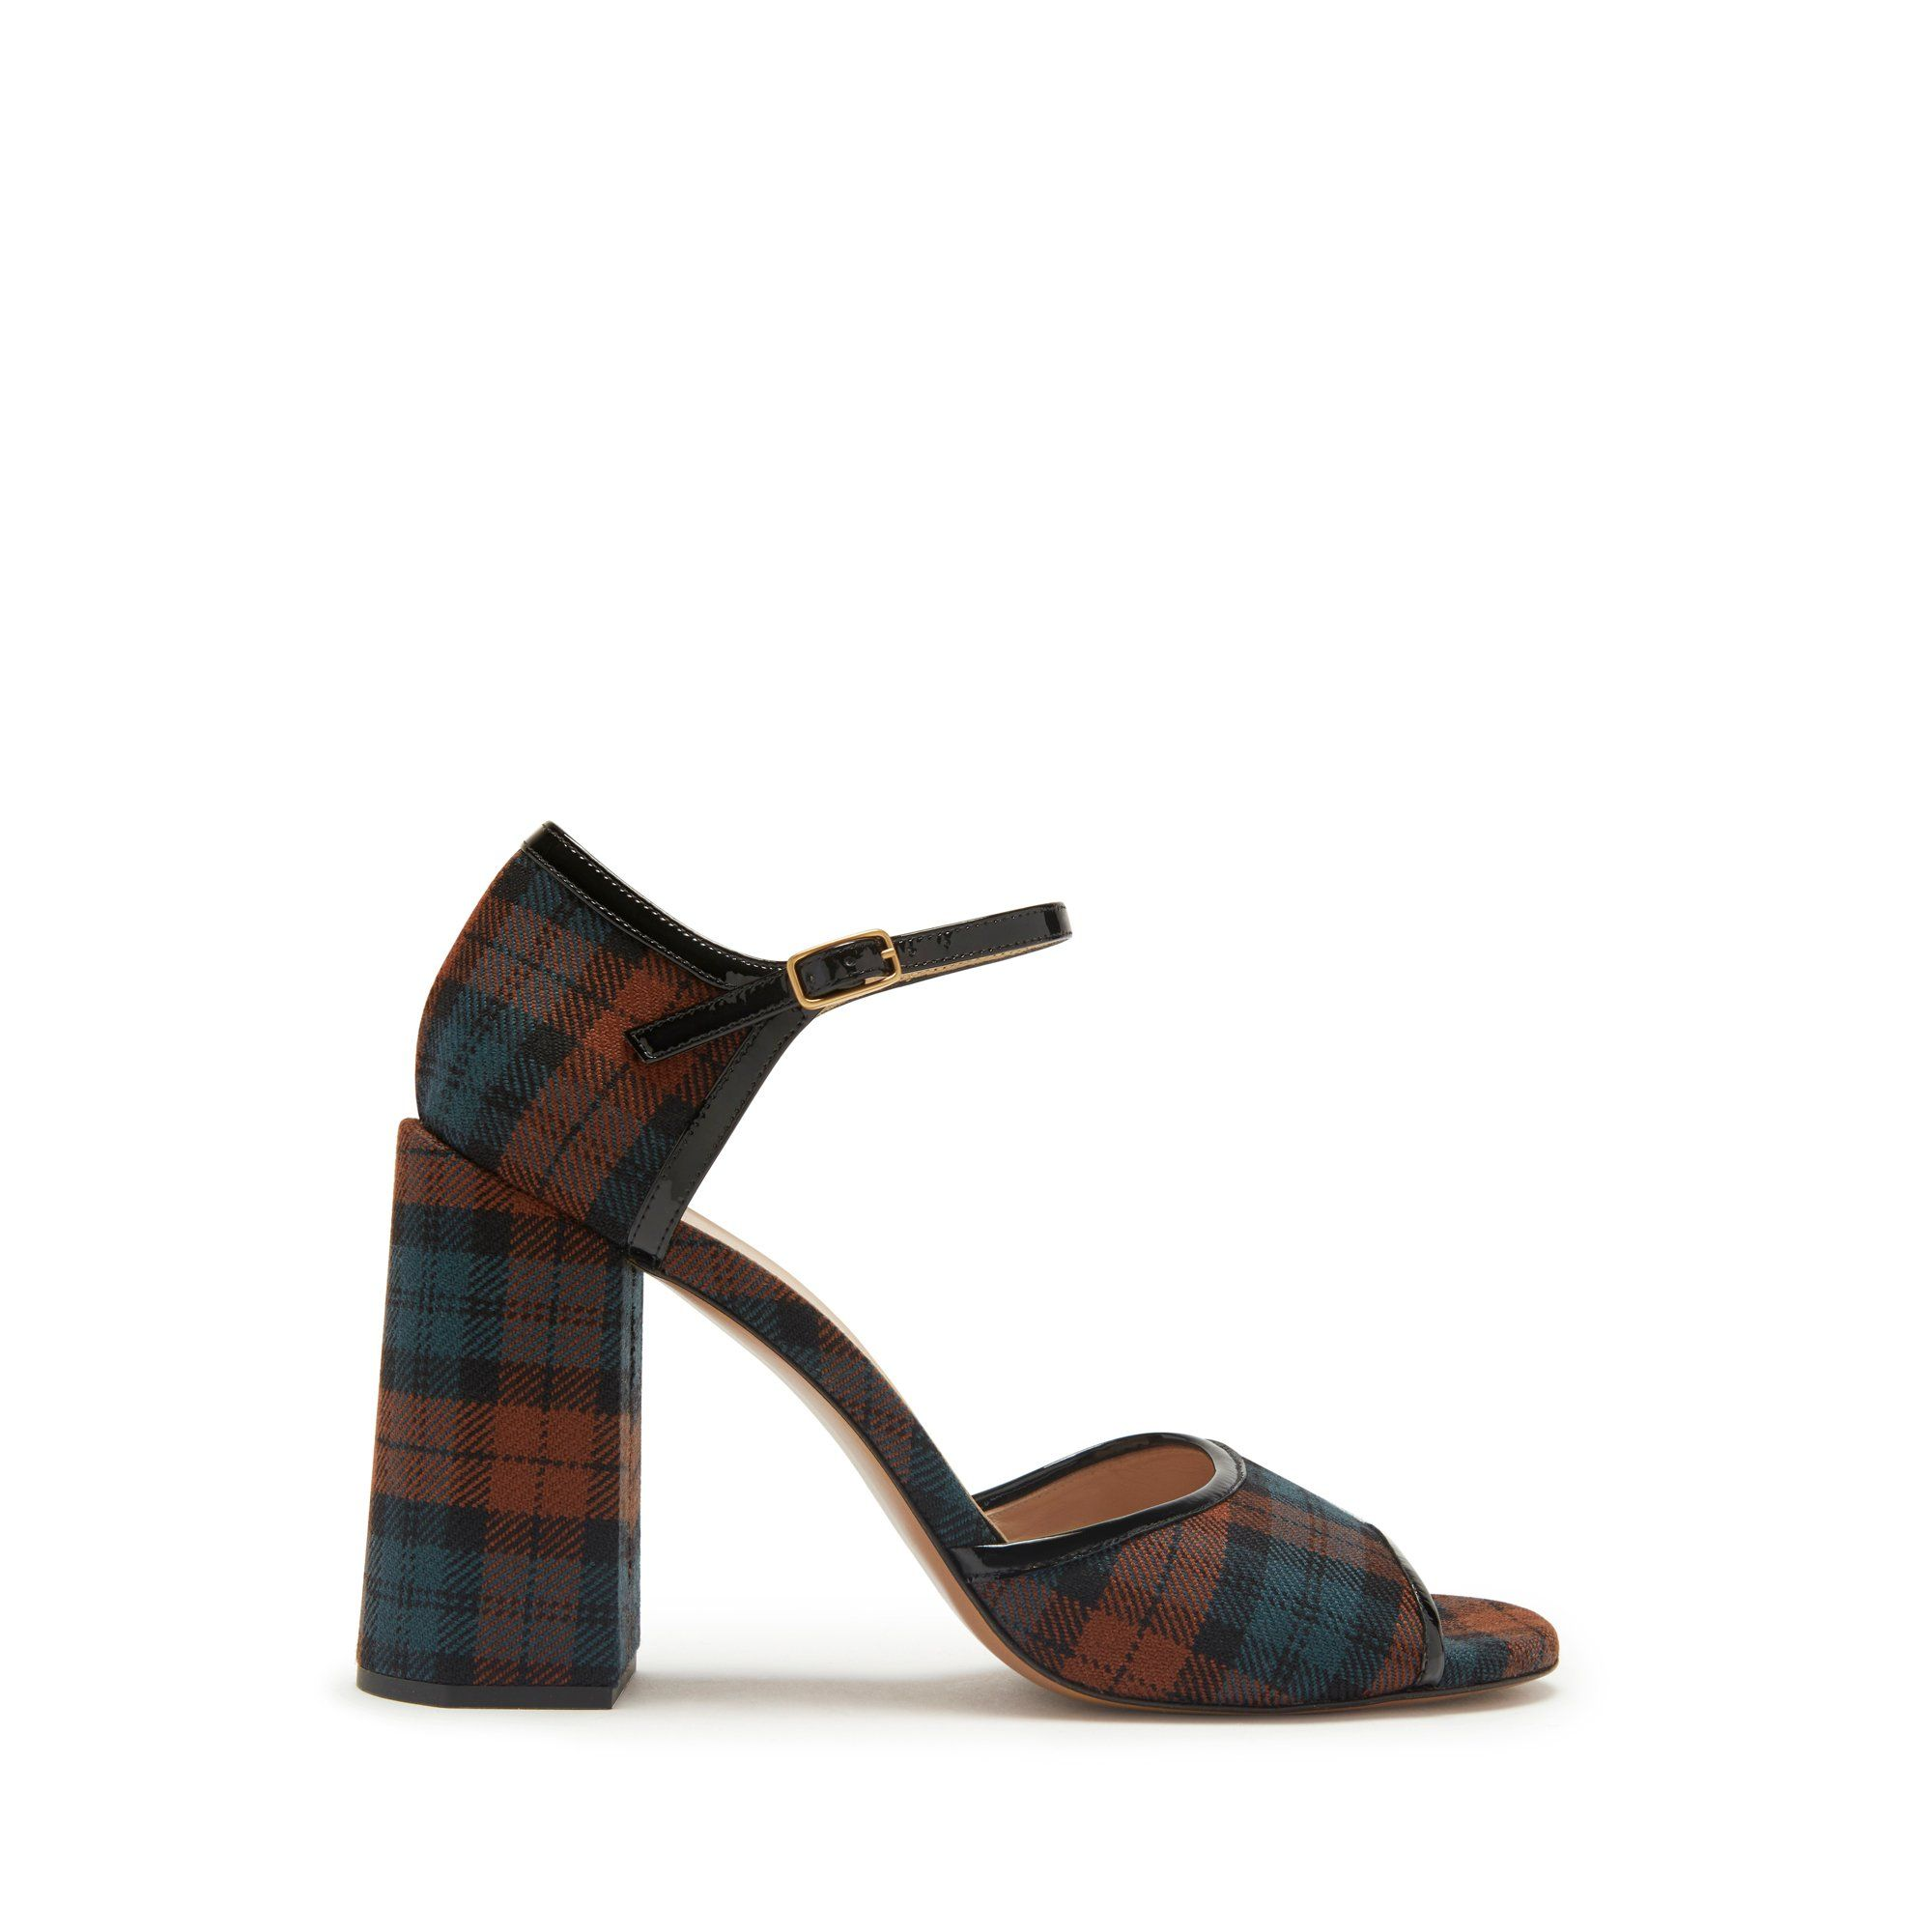 5ae6cab93 Shoes   Women   Mulberry